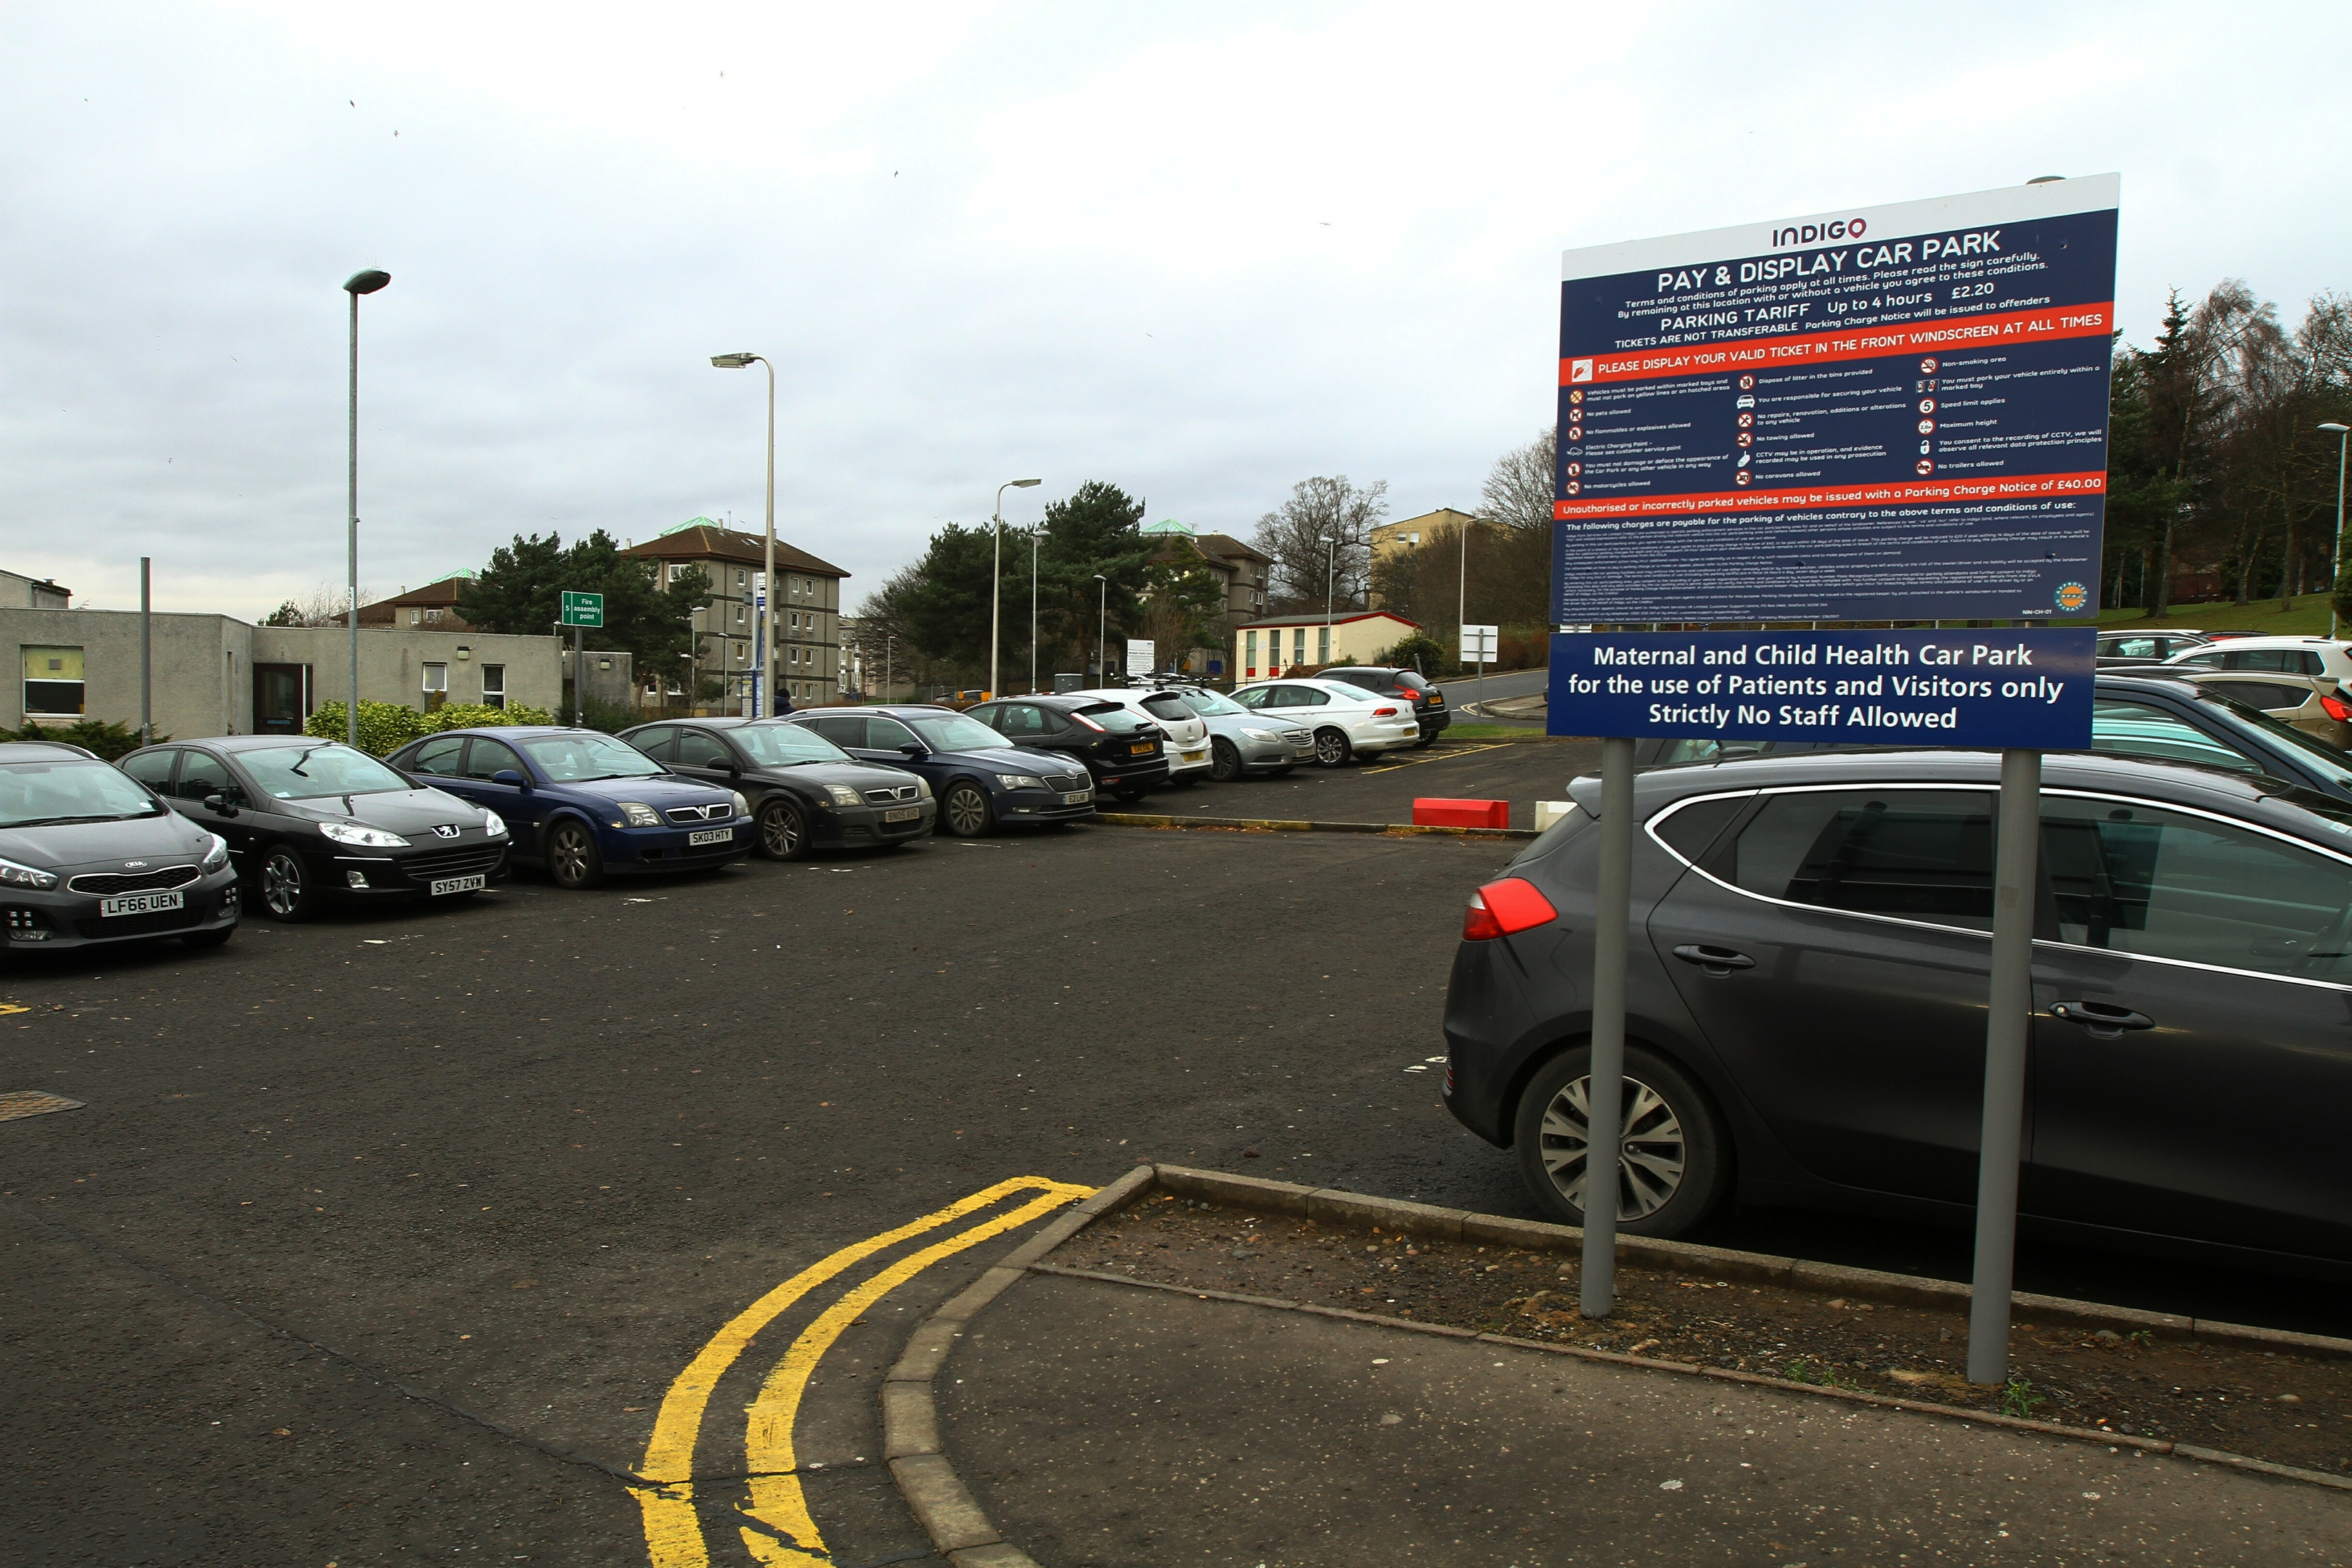 The car park off Kirsty Semple Way. Chris says the fact the other side is only for staff is not clear enough — especially when visitors are likely to be under the stress of worrying for loved ones.